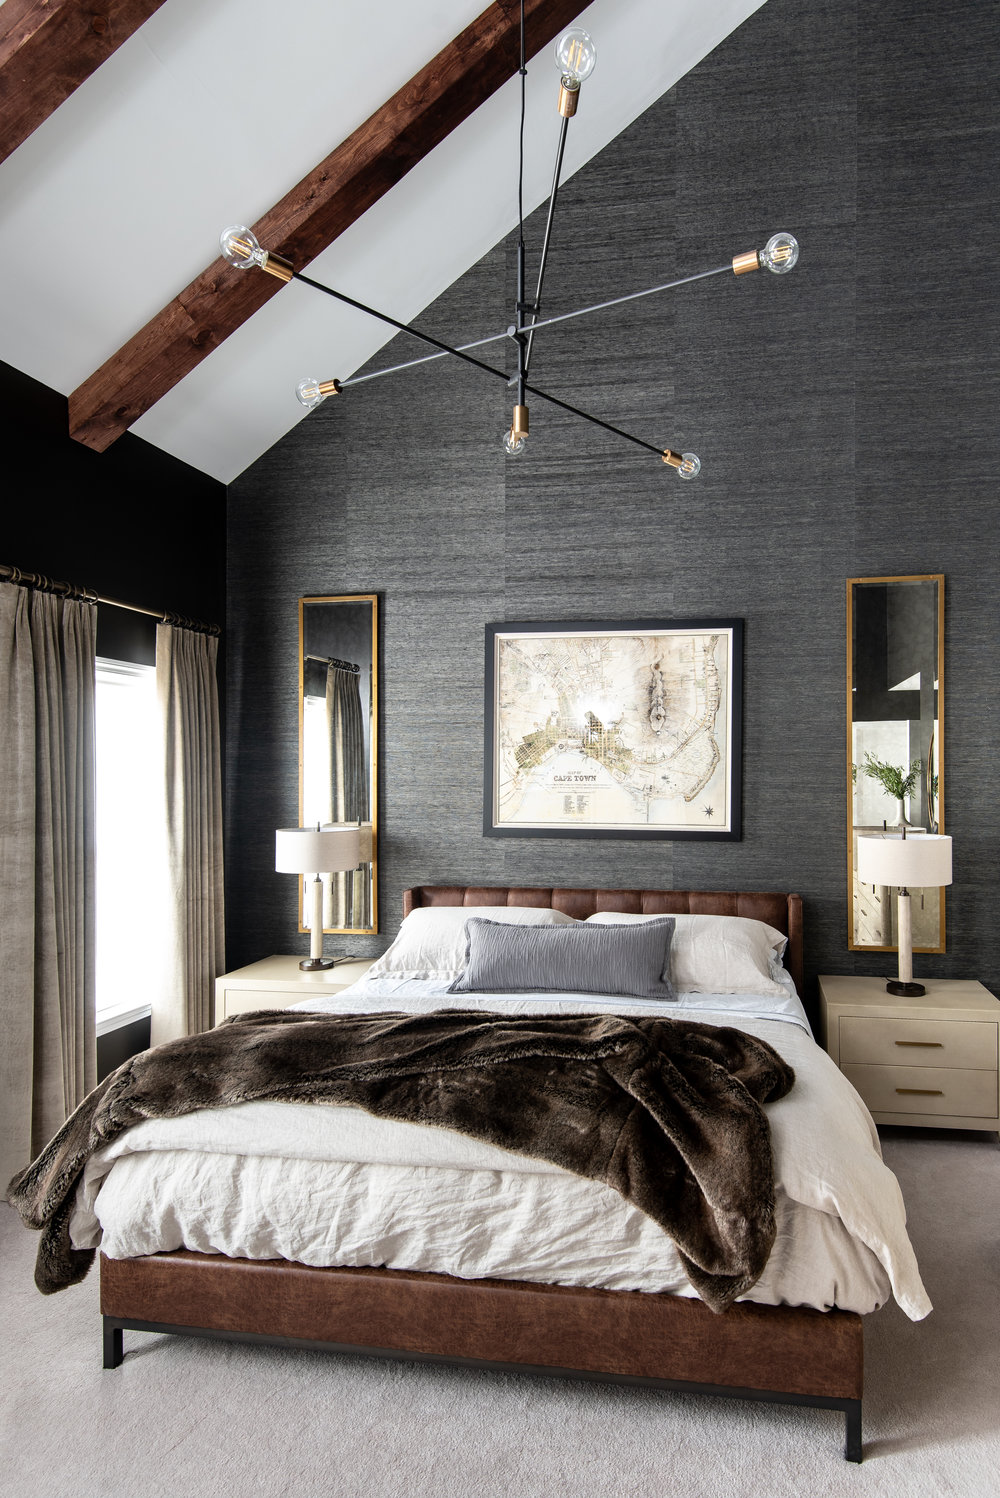 beams-master-bedroom-dark-walls-leather-bed-tall-mirrors-reading-nook-tufted-chair-faux-fur-mobile-chandelier-bethesda-dmv-homes-splendor-styling.jpg